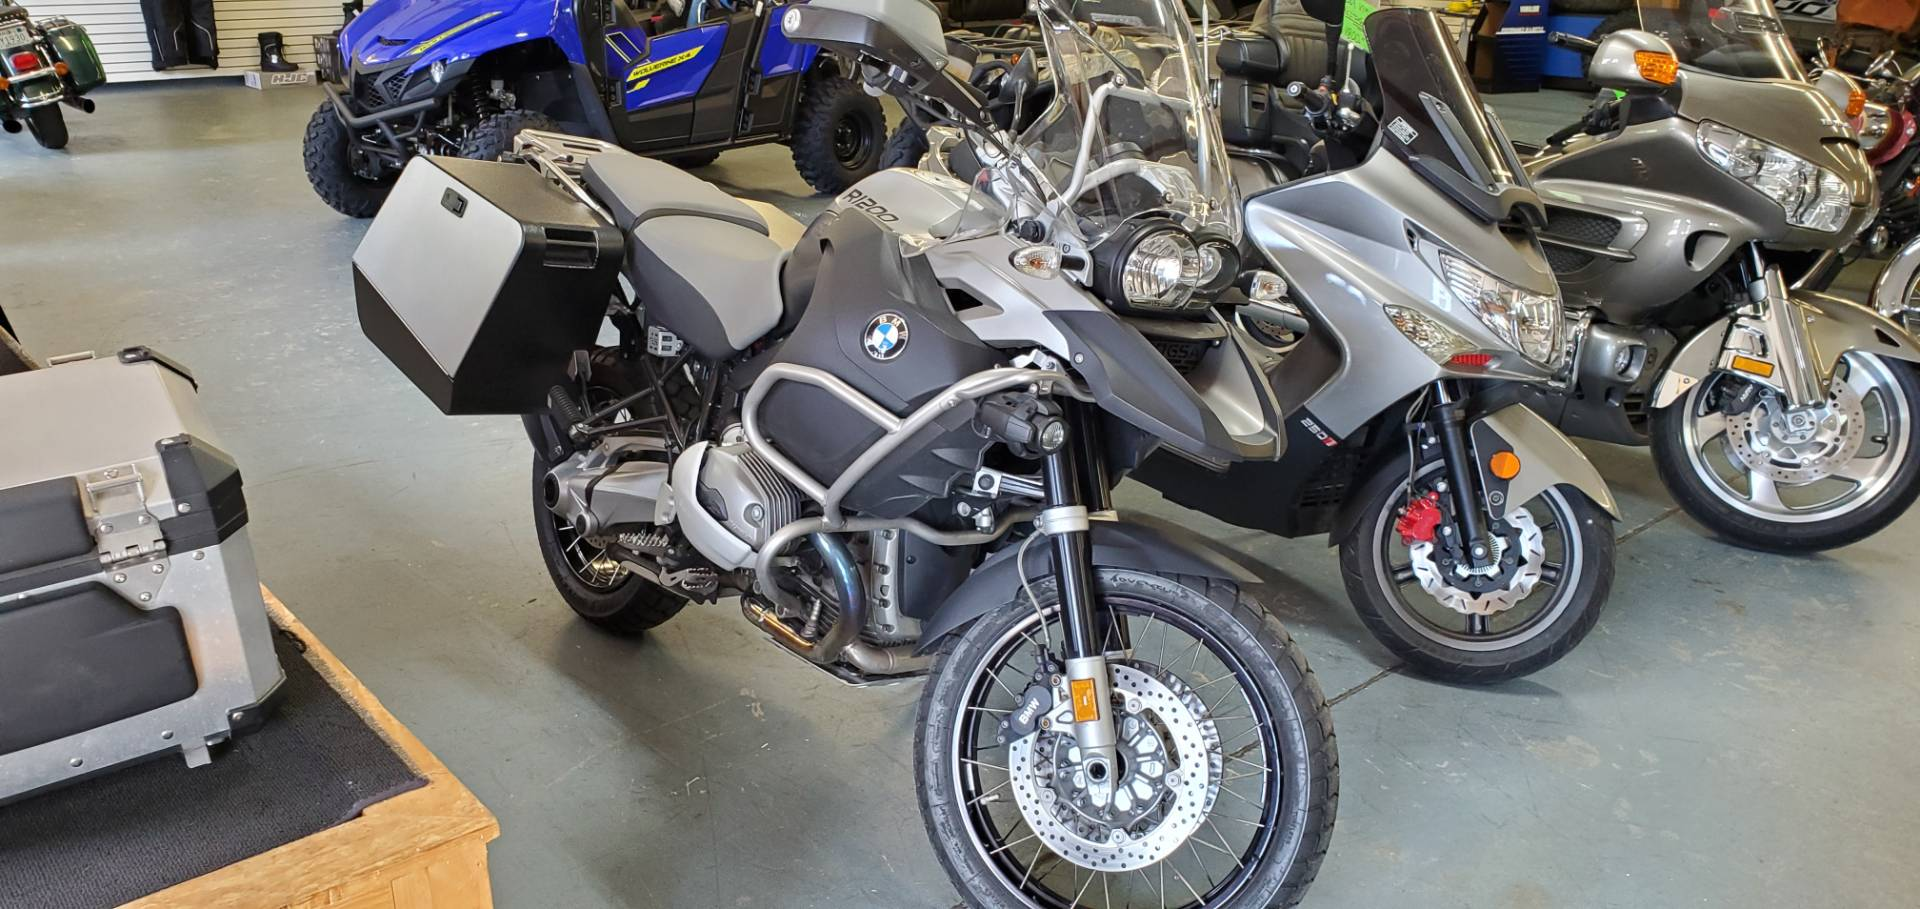 2008 BMW R 1200 GS Adventure in Tamworth, New Hampshire - Photo 1